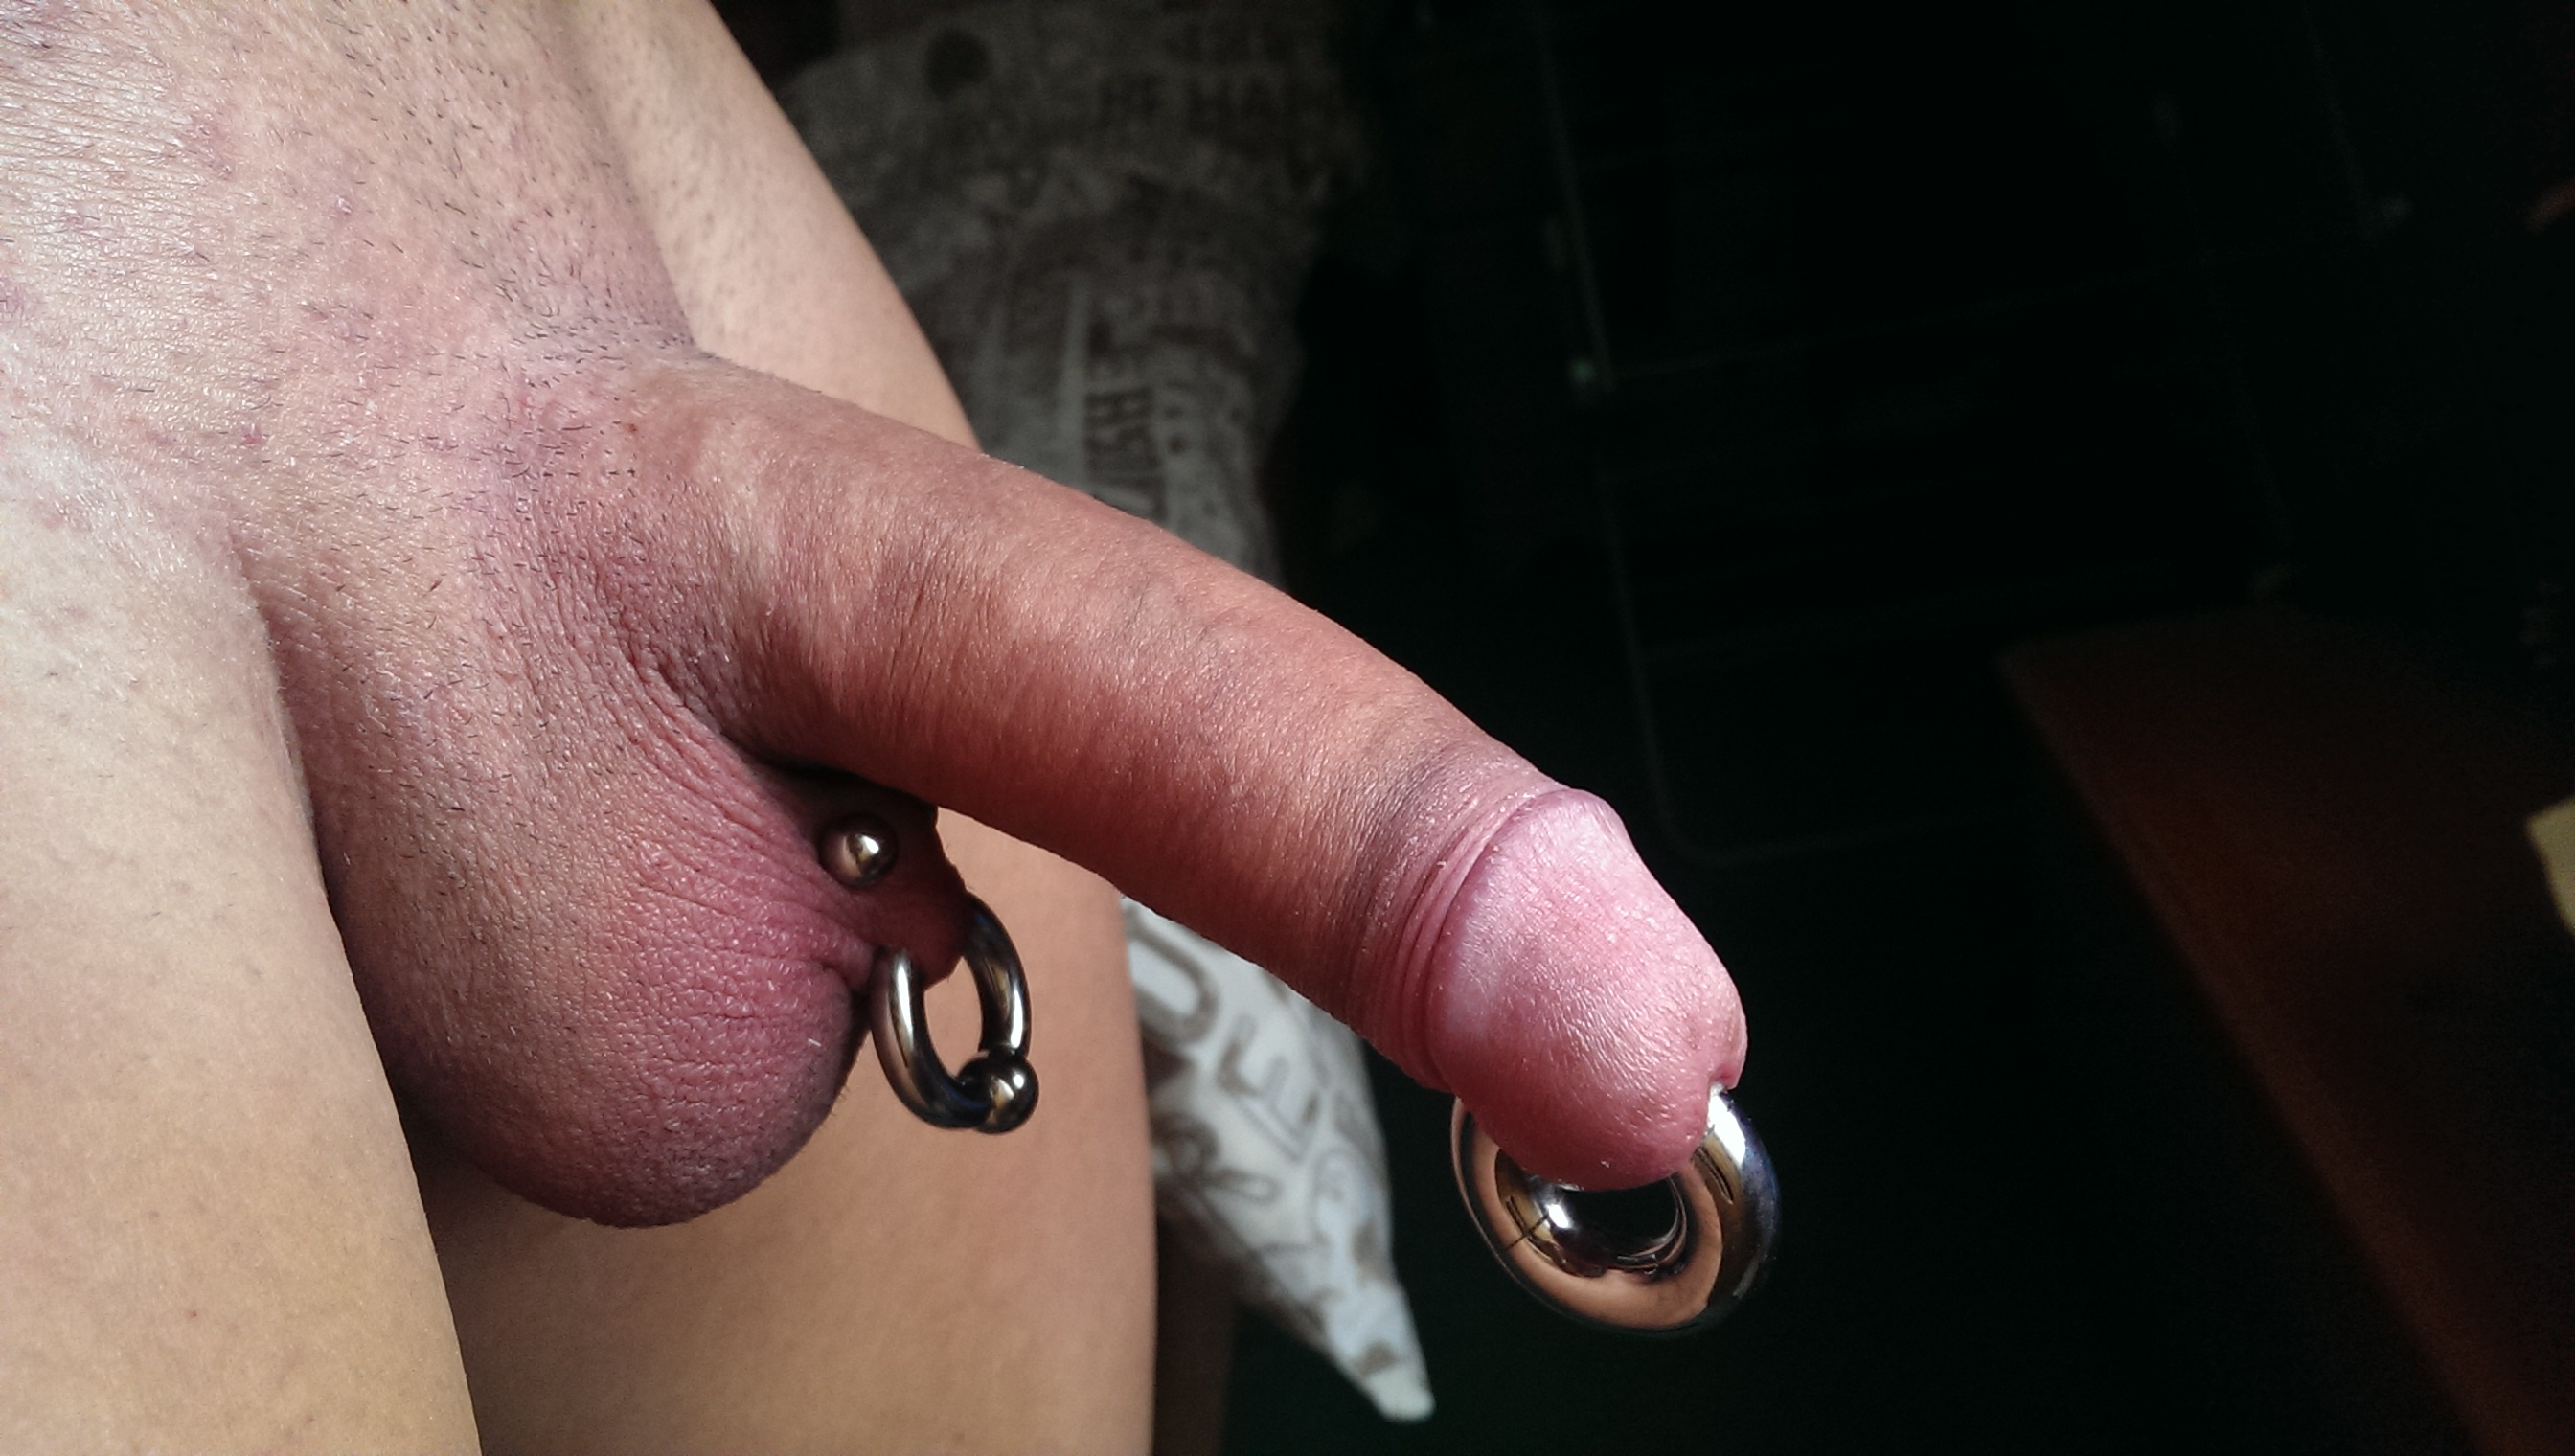 cock-and-ball-piercing